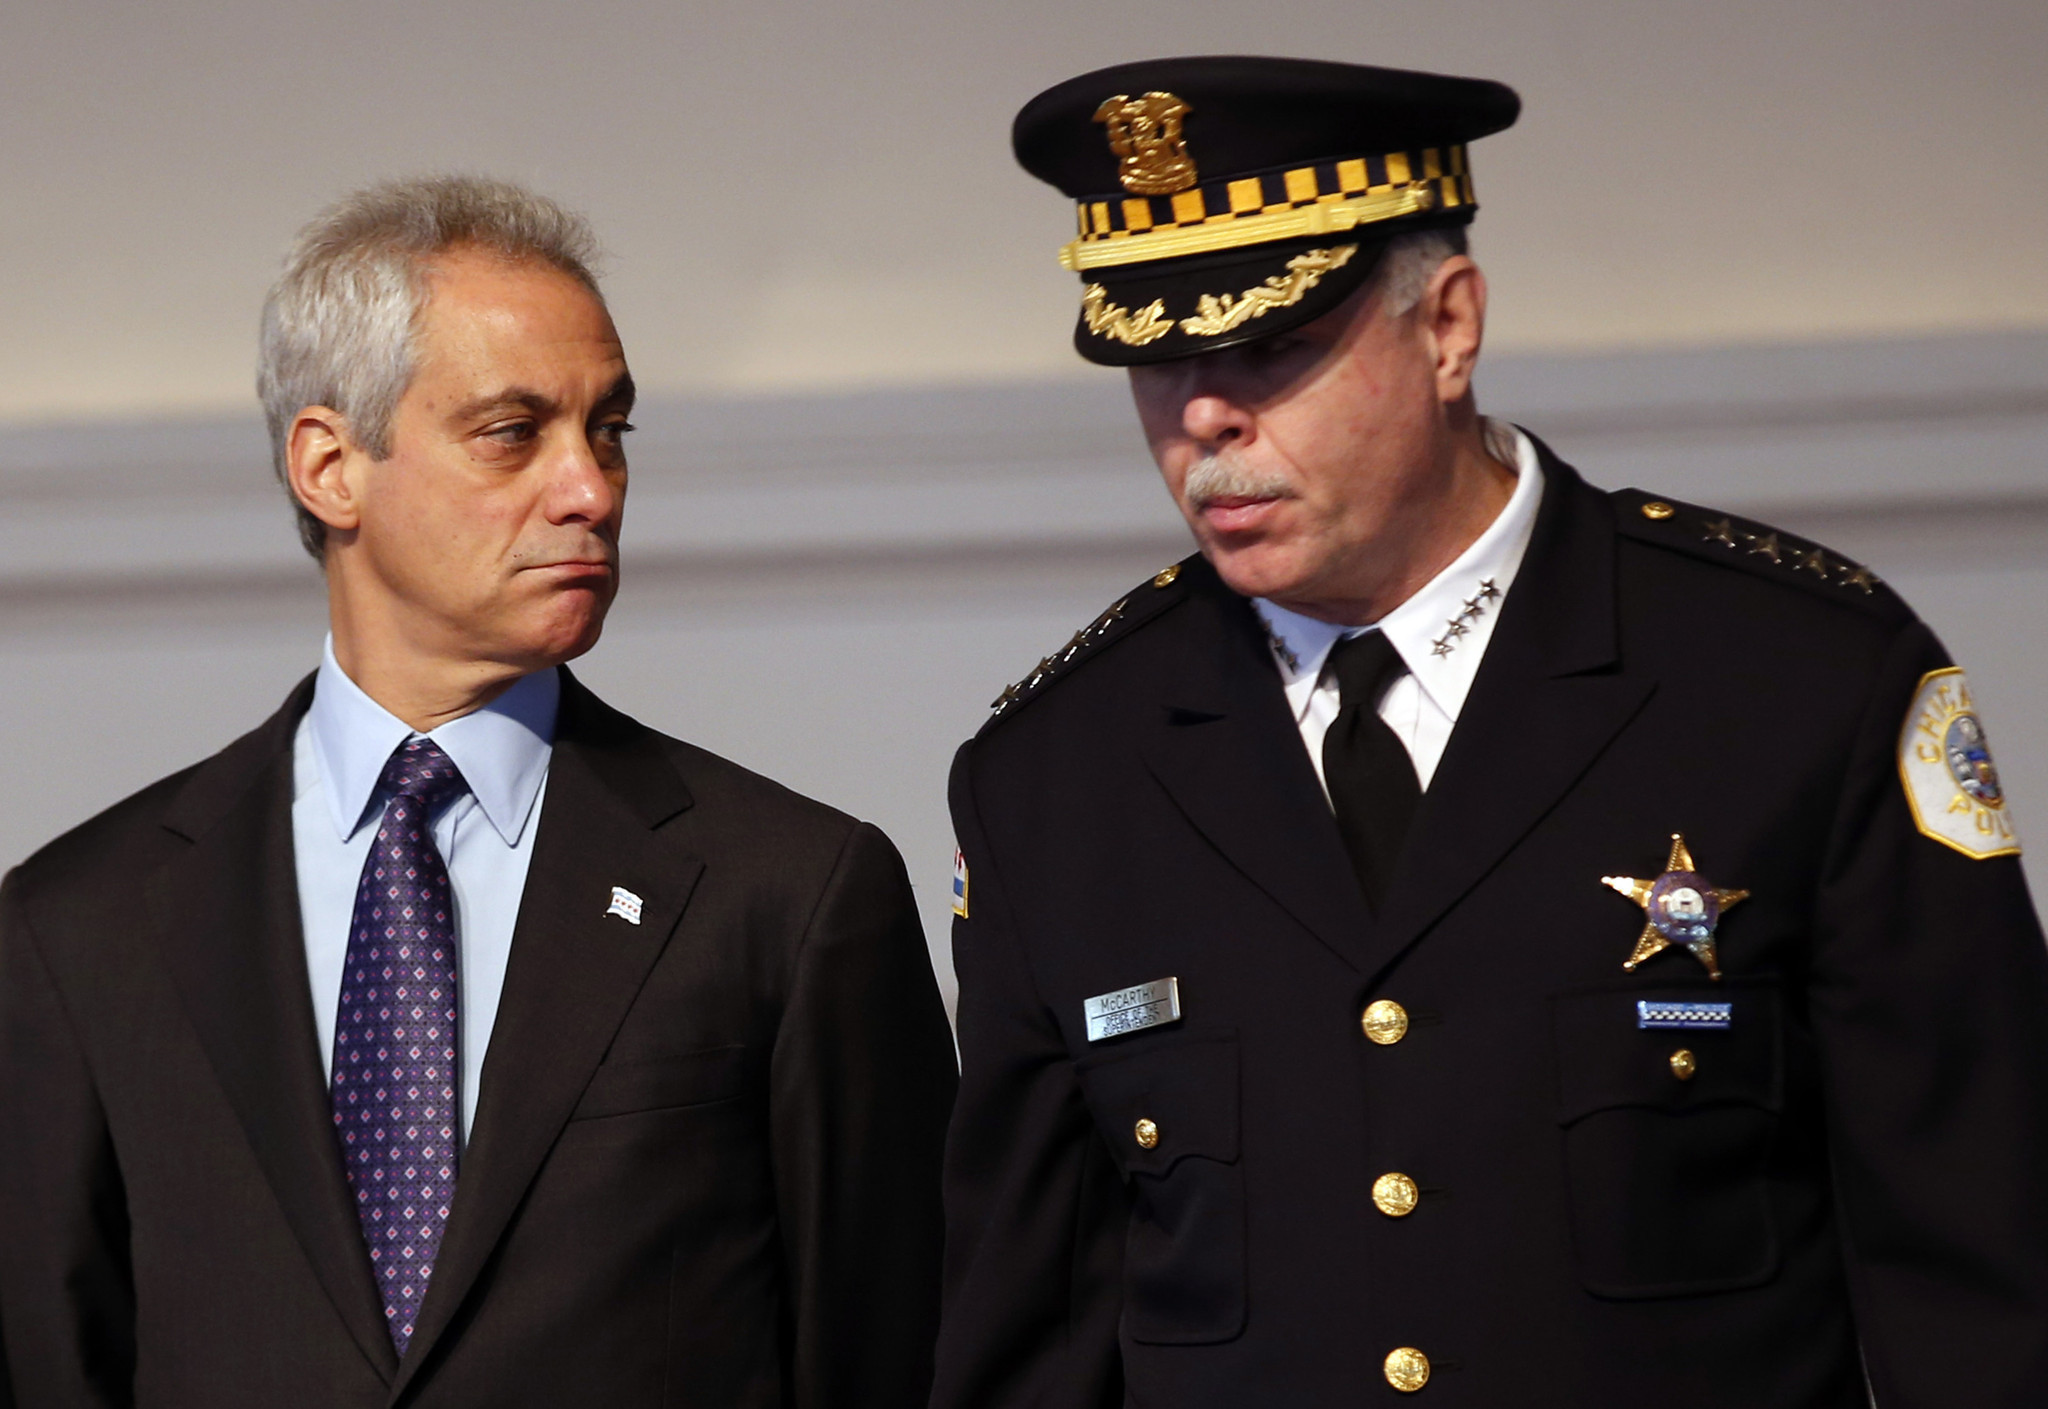 Chicago Police Department - Arrest Search Home